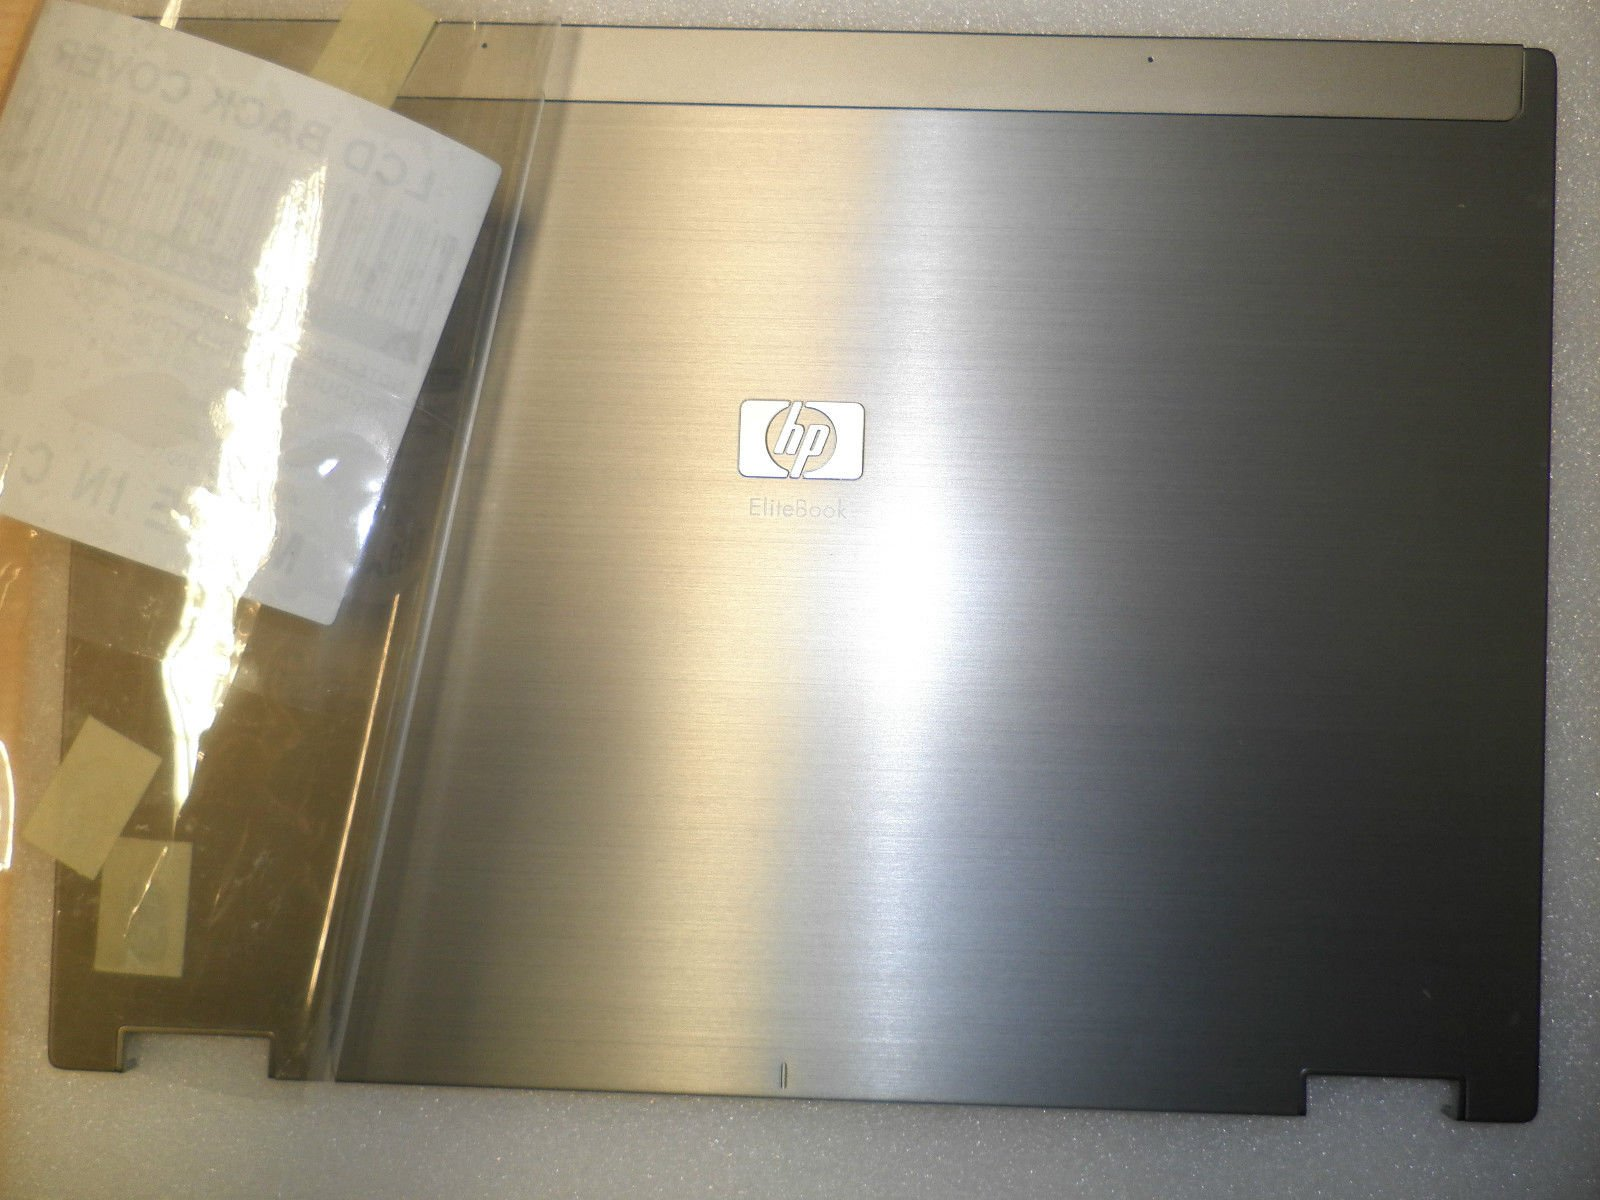 HP Elitebook 6930p-1